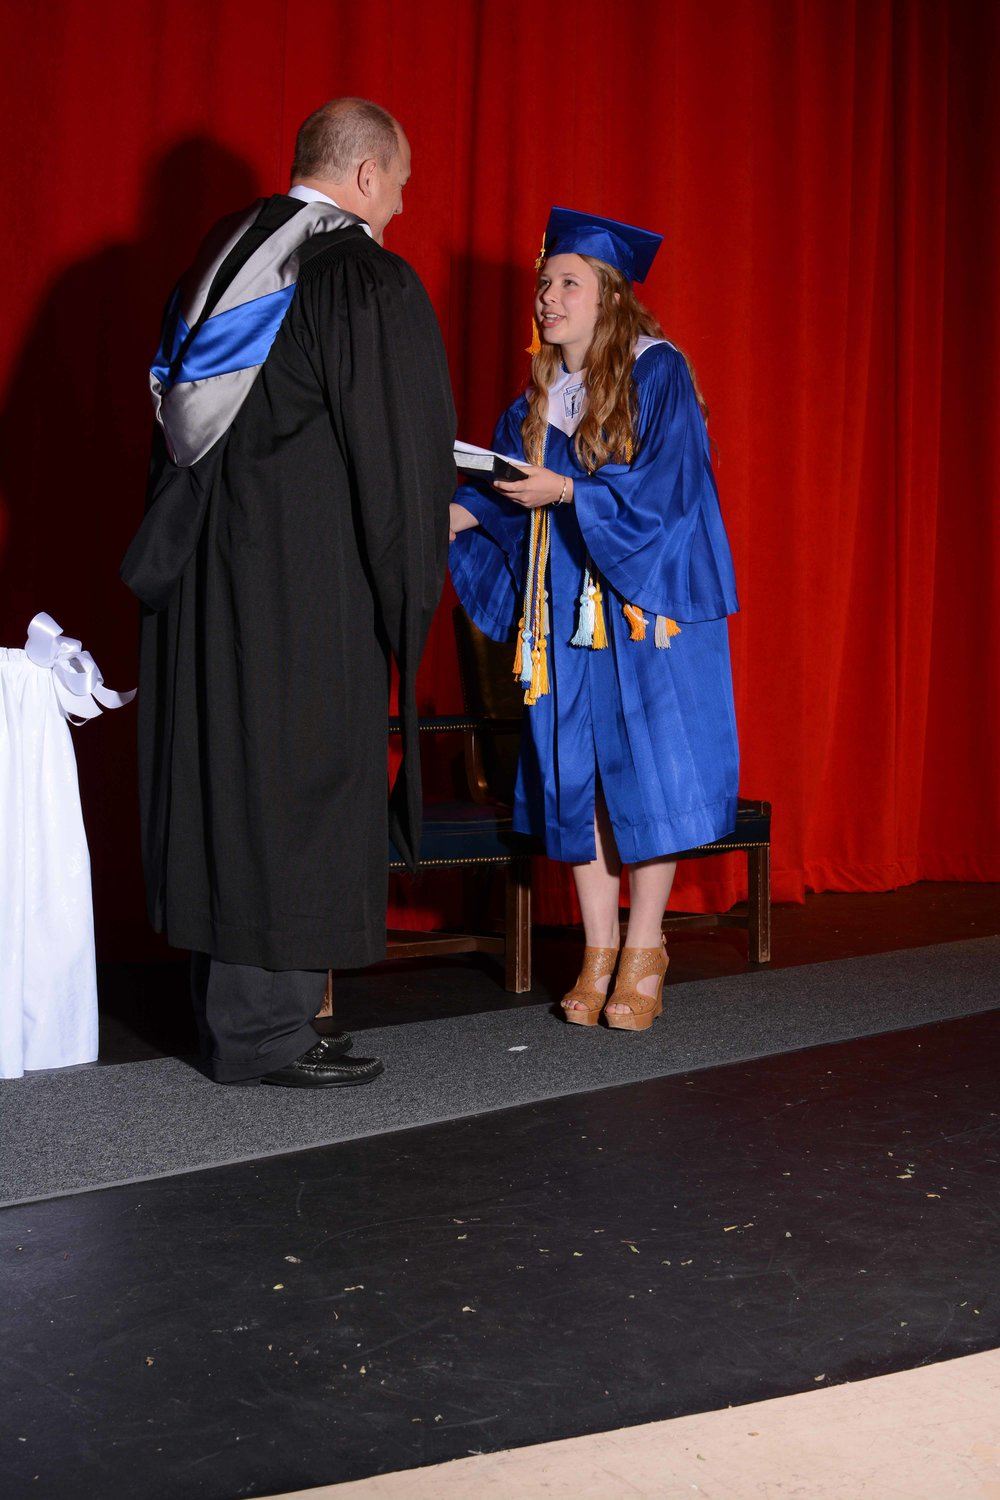 May15 HardingGraduation07.jpg